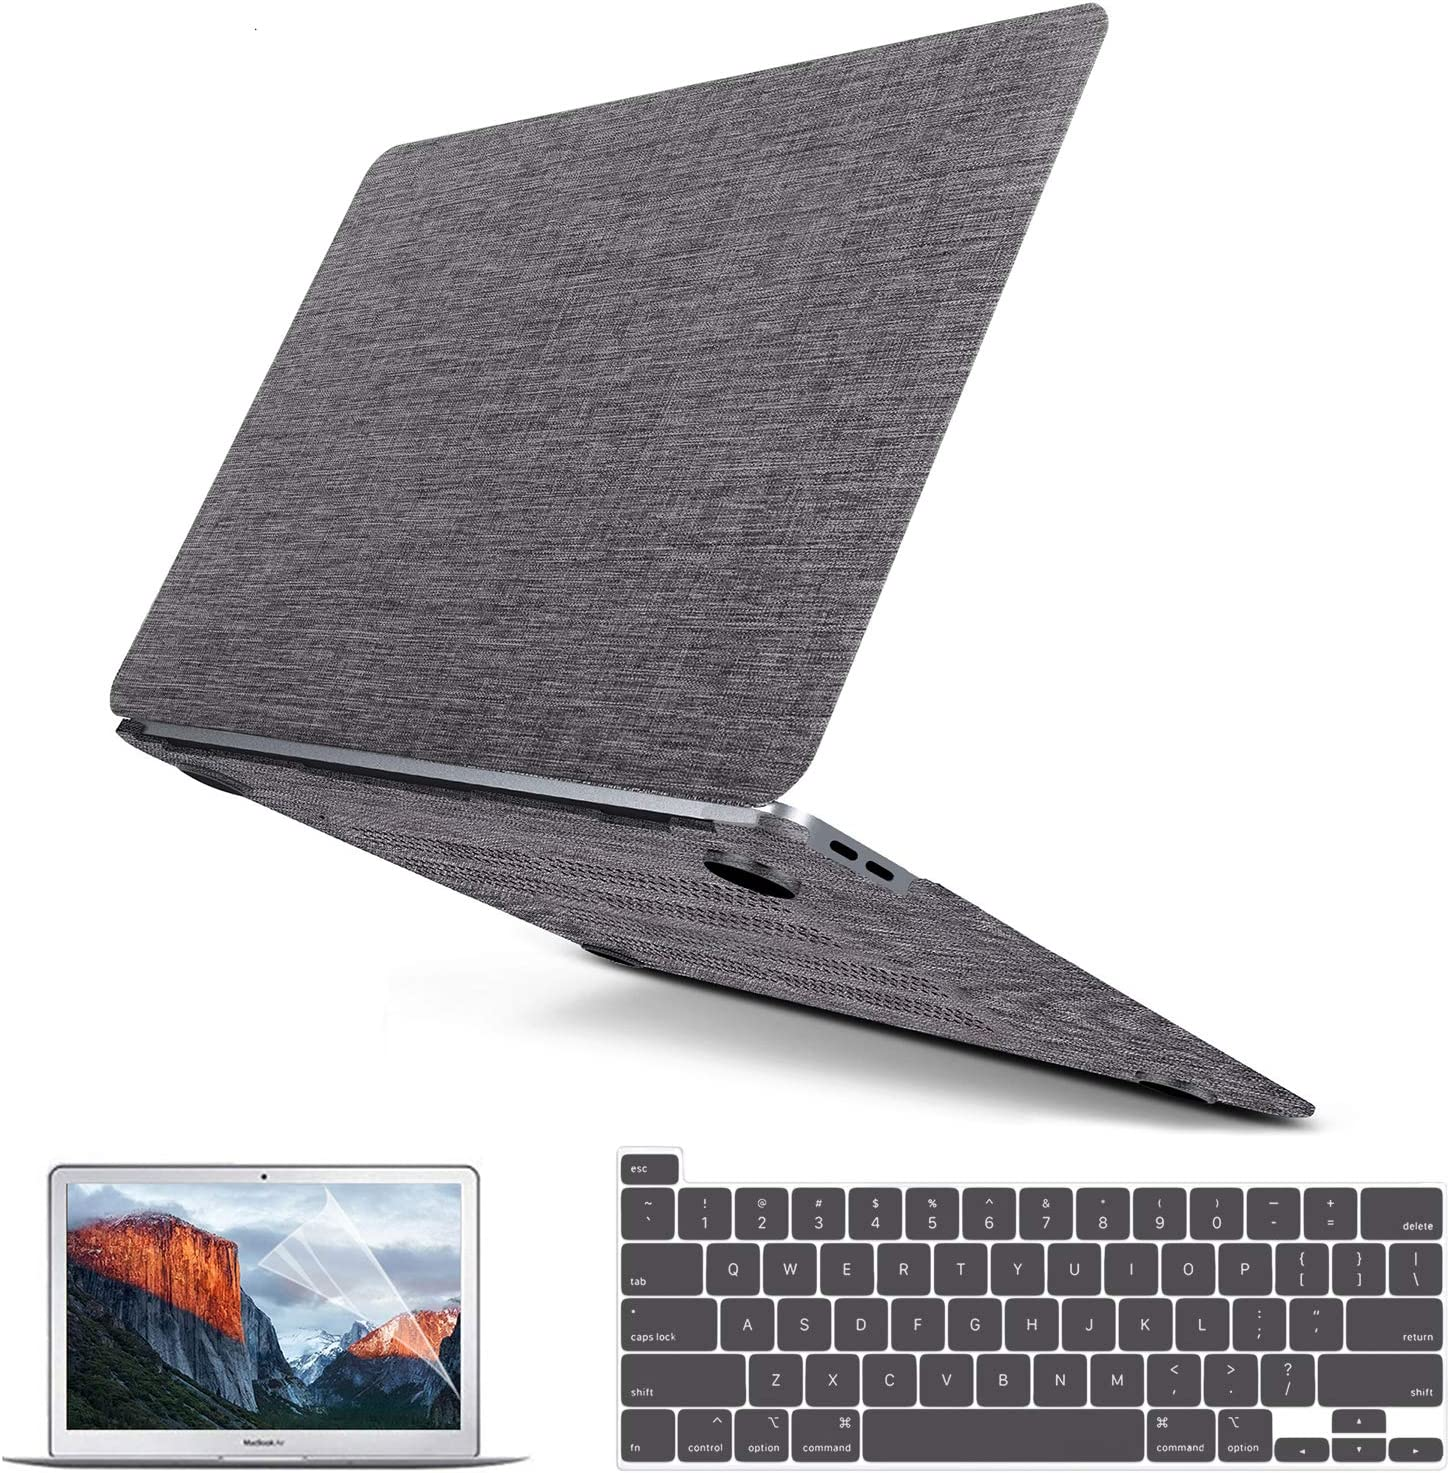 IMDCASE Compatible with MacBook Pro 16 Inch Case 2021 2020 2019 Release A2141 Retina Display & Touch Bar & Touch ID, MacBook Pro Case Mac Book Fabric Hard Shell + Keyboard Cover + Screen Protector